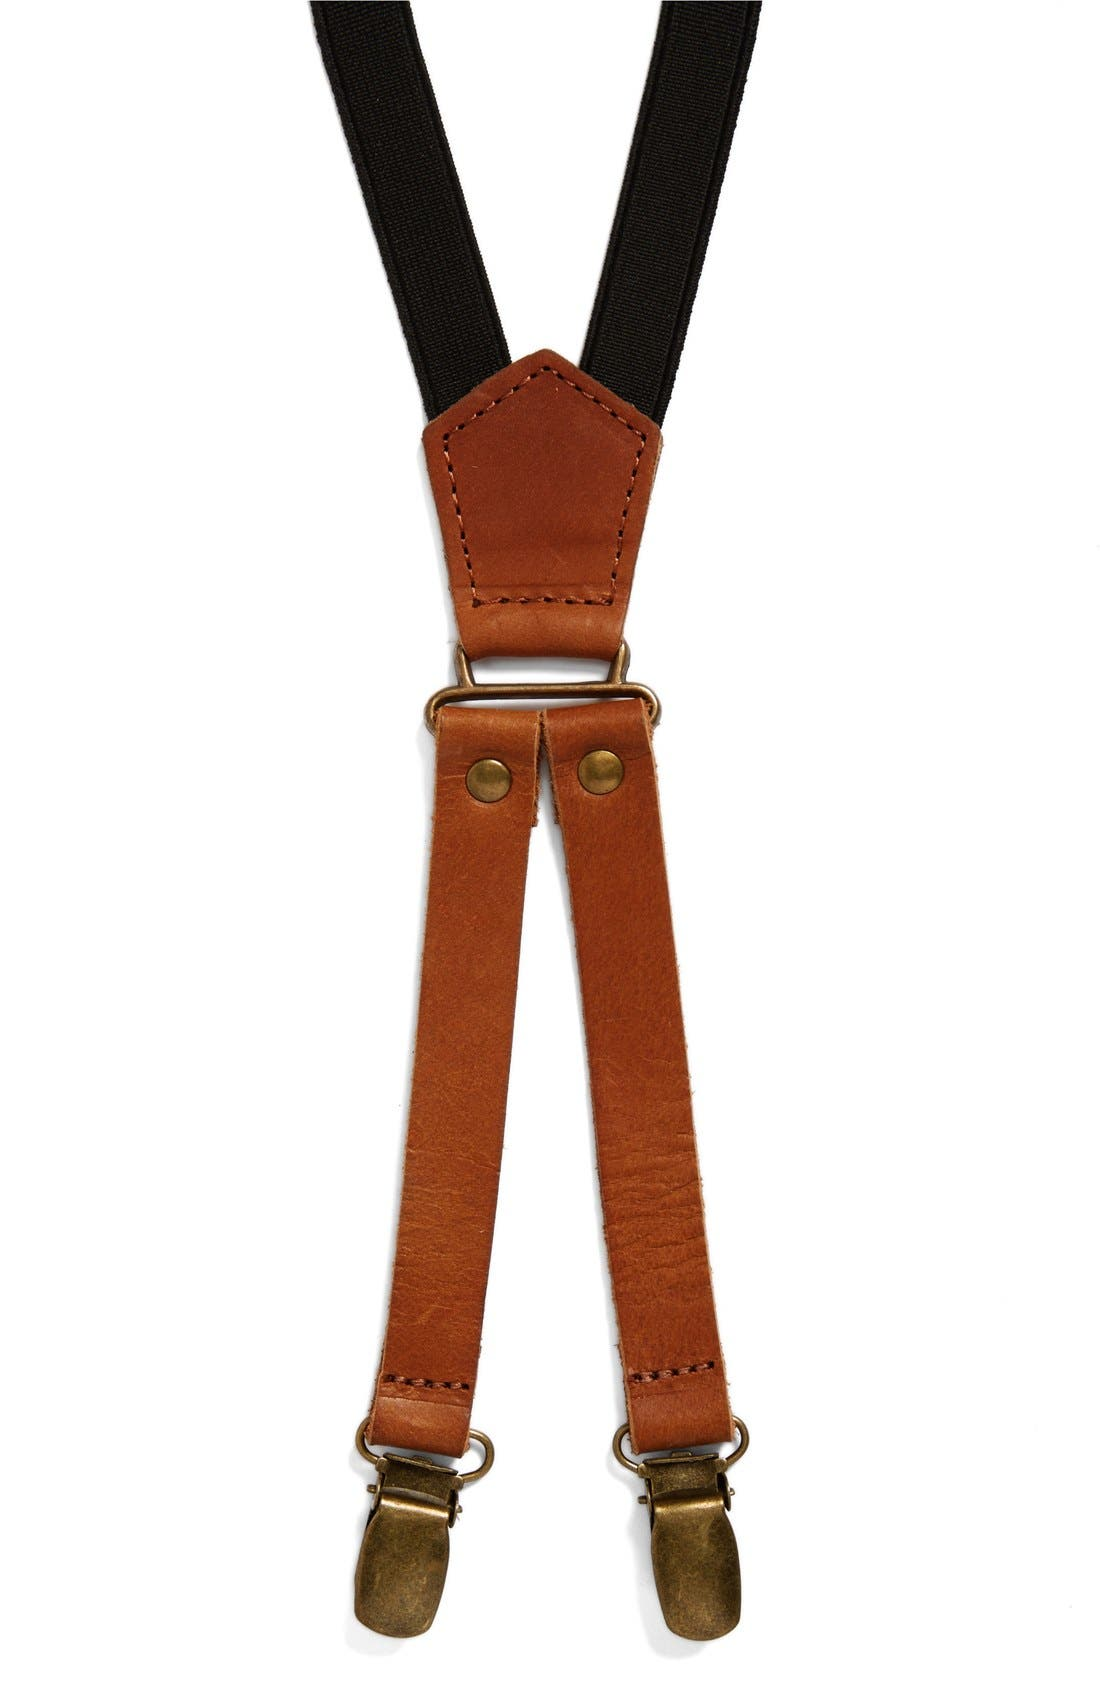 Skinny Leather Suspenders,                             Main thumbnail 1, color,                             200